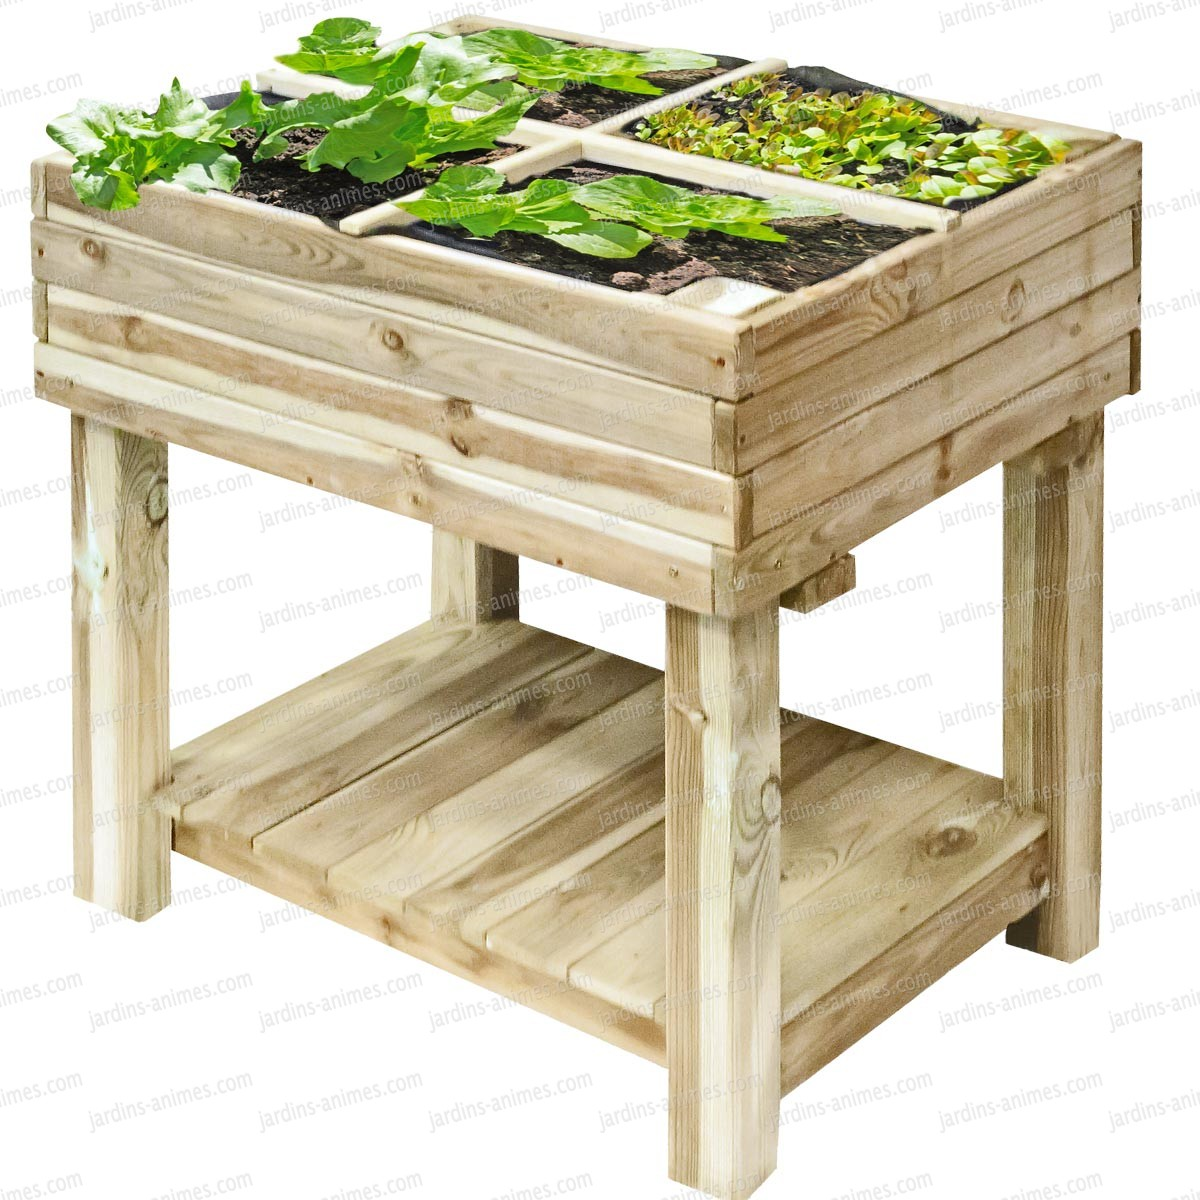 carr potager bois sur pied 80x60cm avec bache de protection carr potager. Black Bedroom Furniture Sets. Home Design Ideas